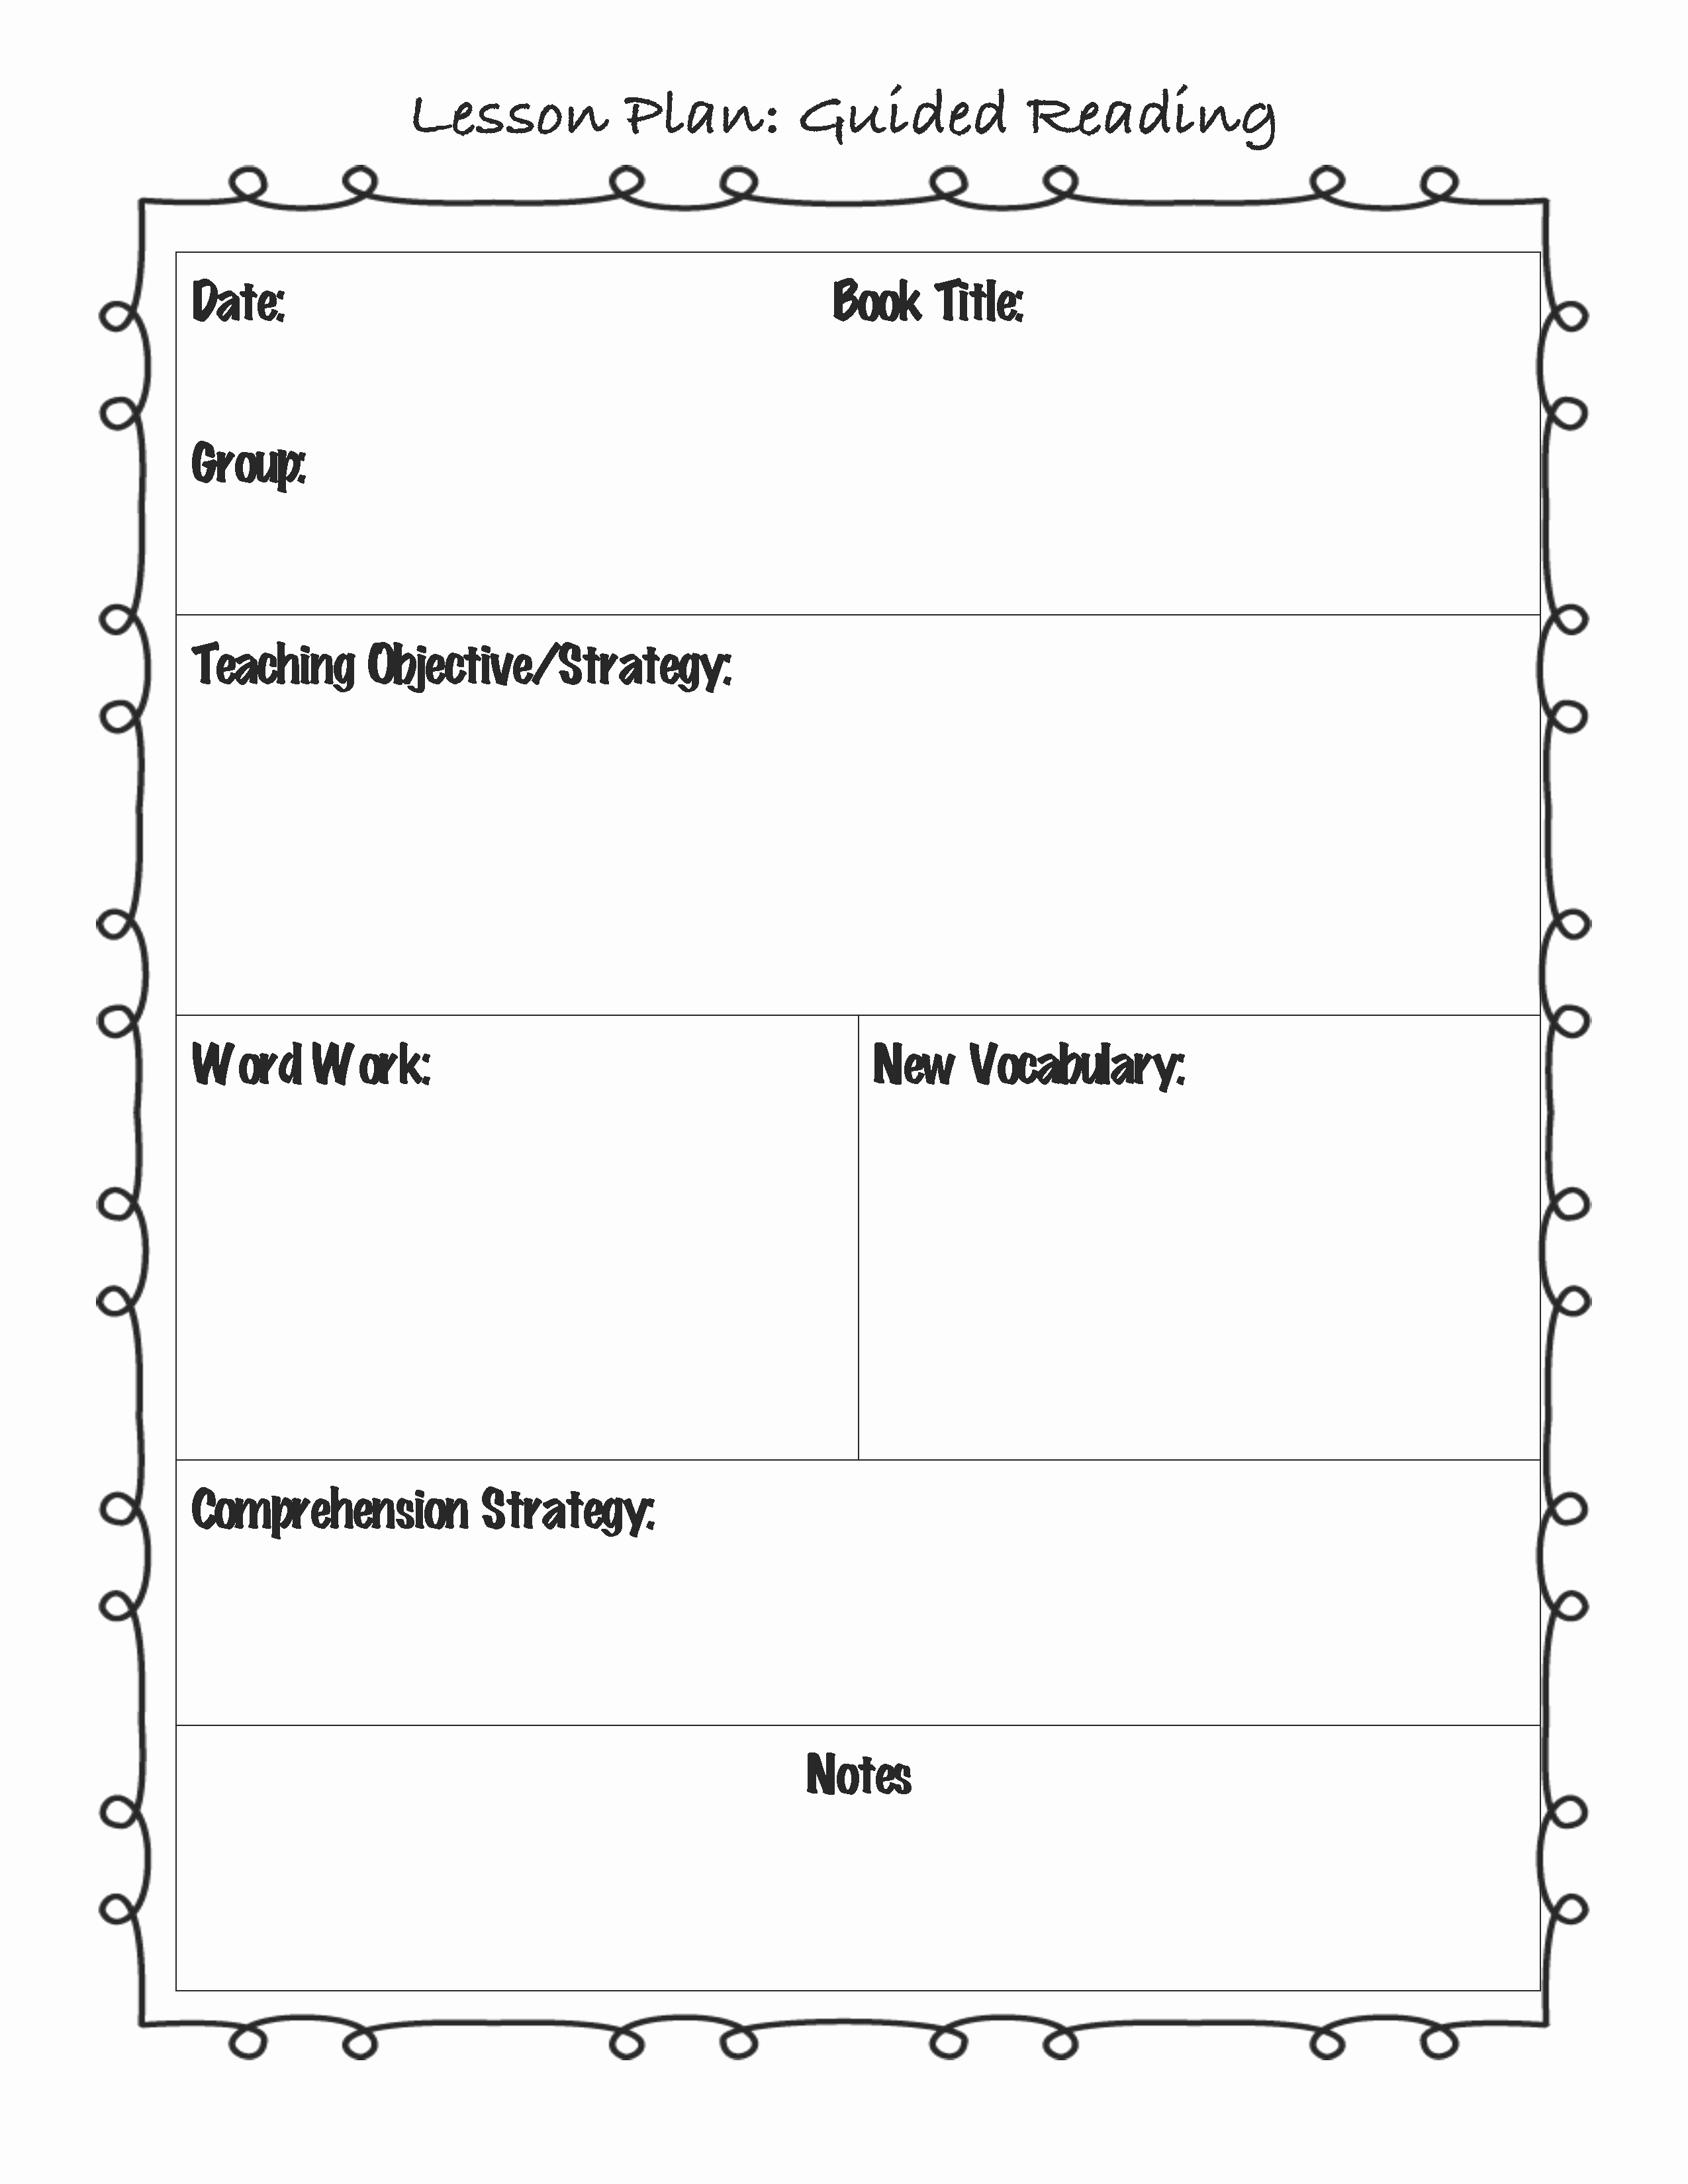 1st Grade Lesson Plan Template Beautiful Guided Reading Lesson Plan Template